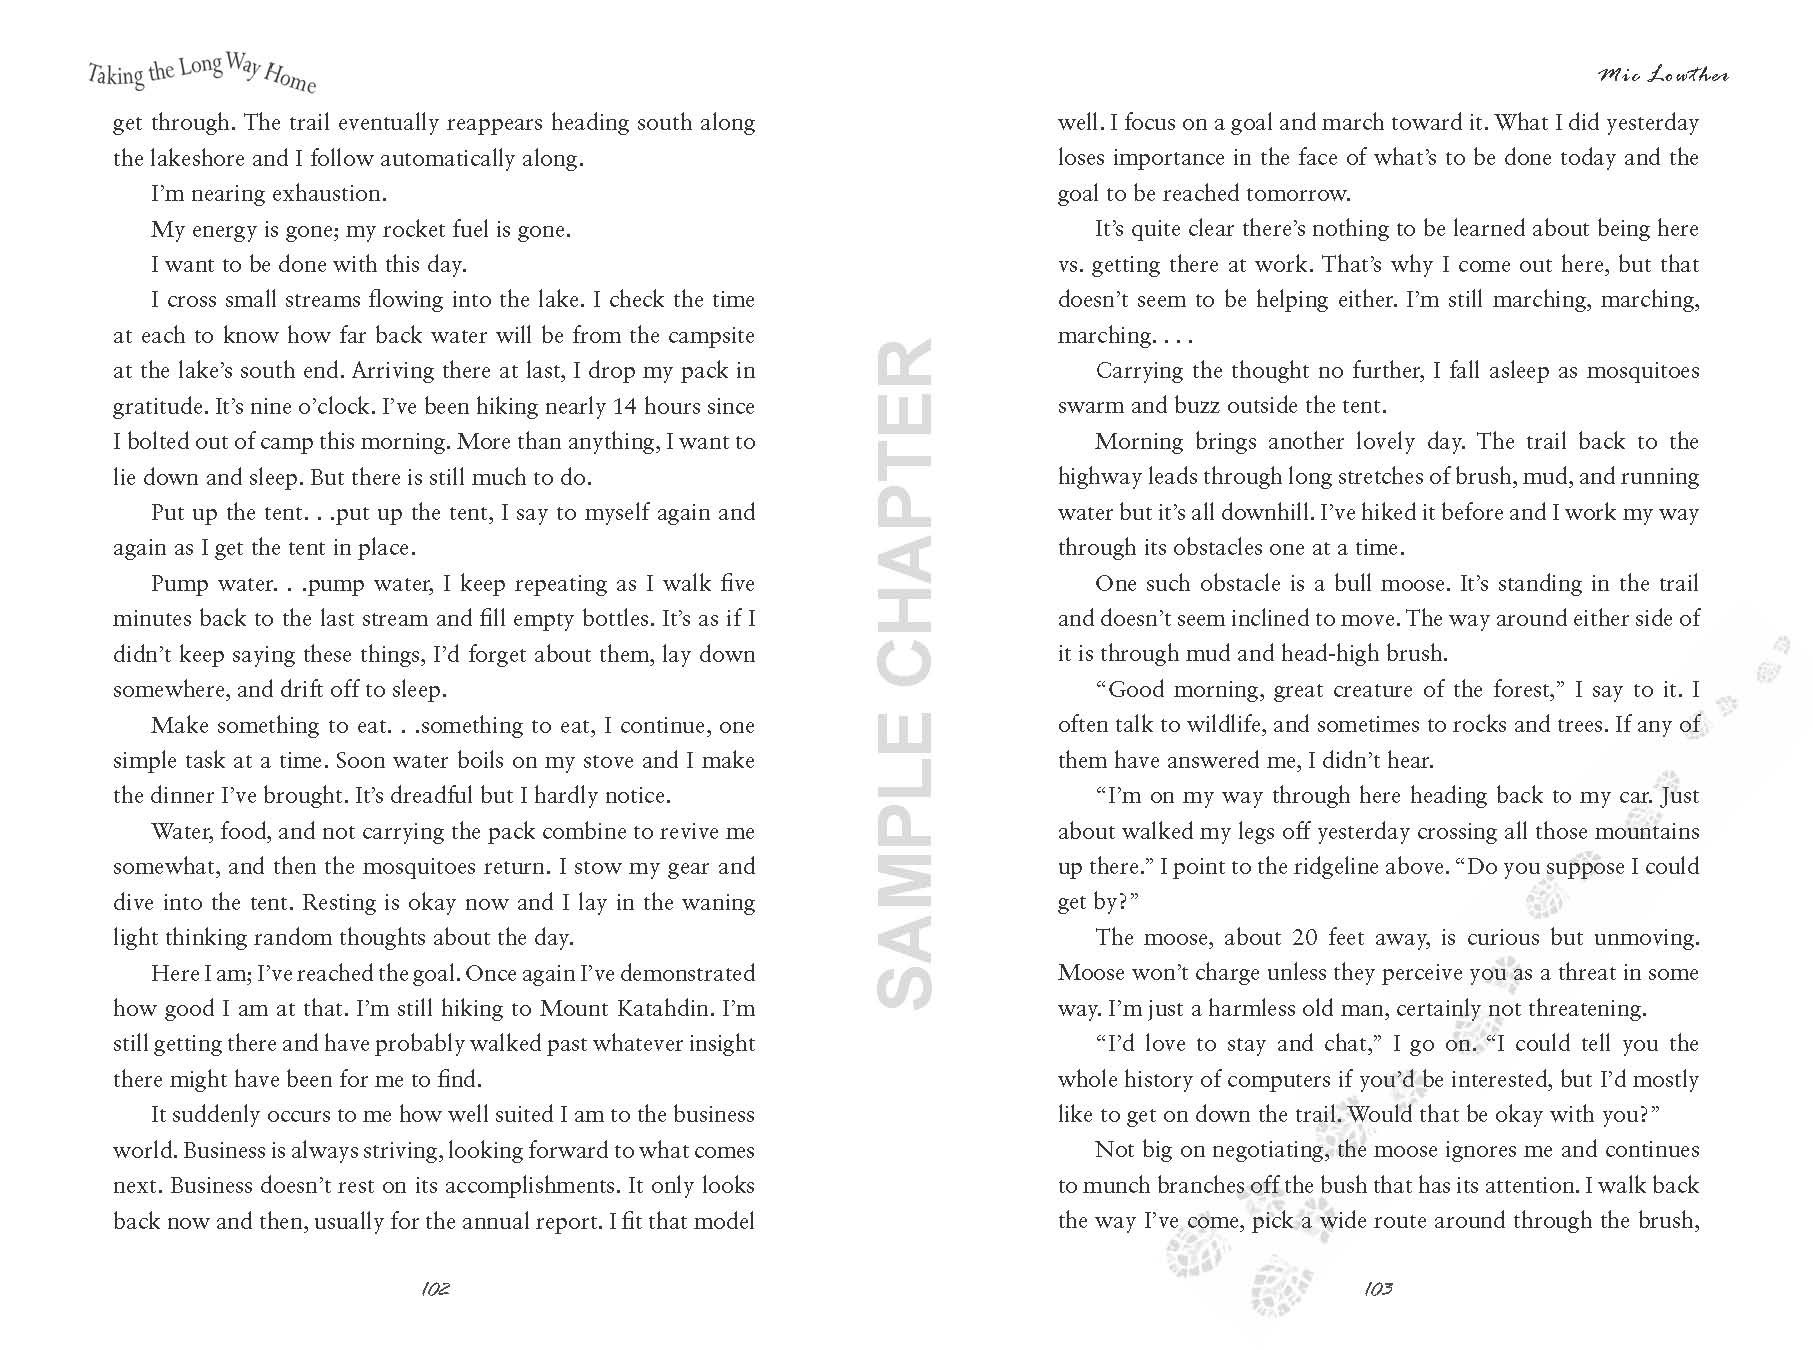 Taking The Long Way Home sample chapter pg 13 & 14